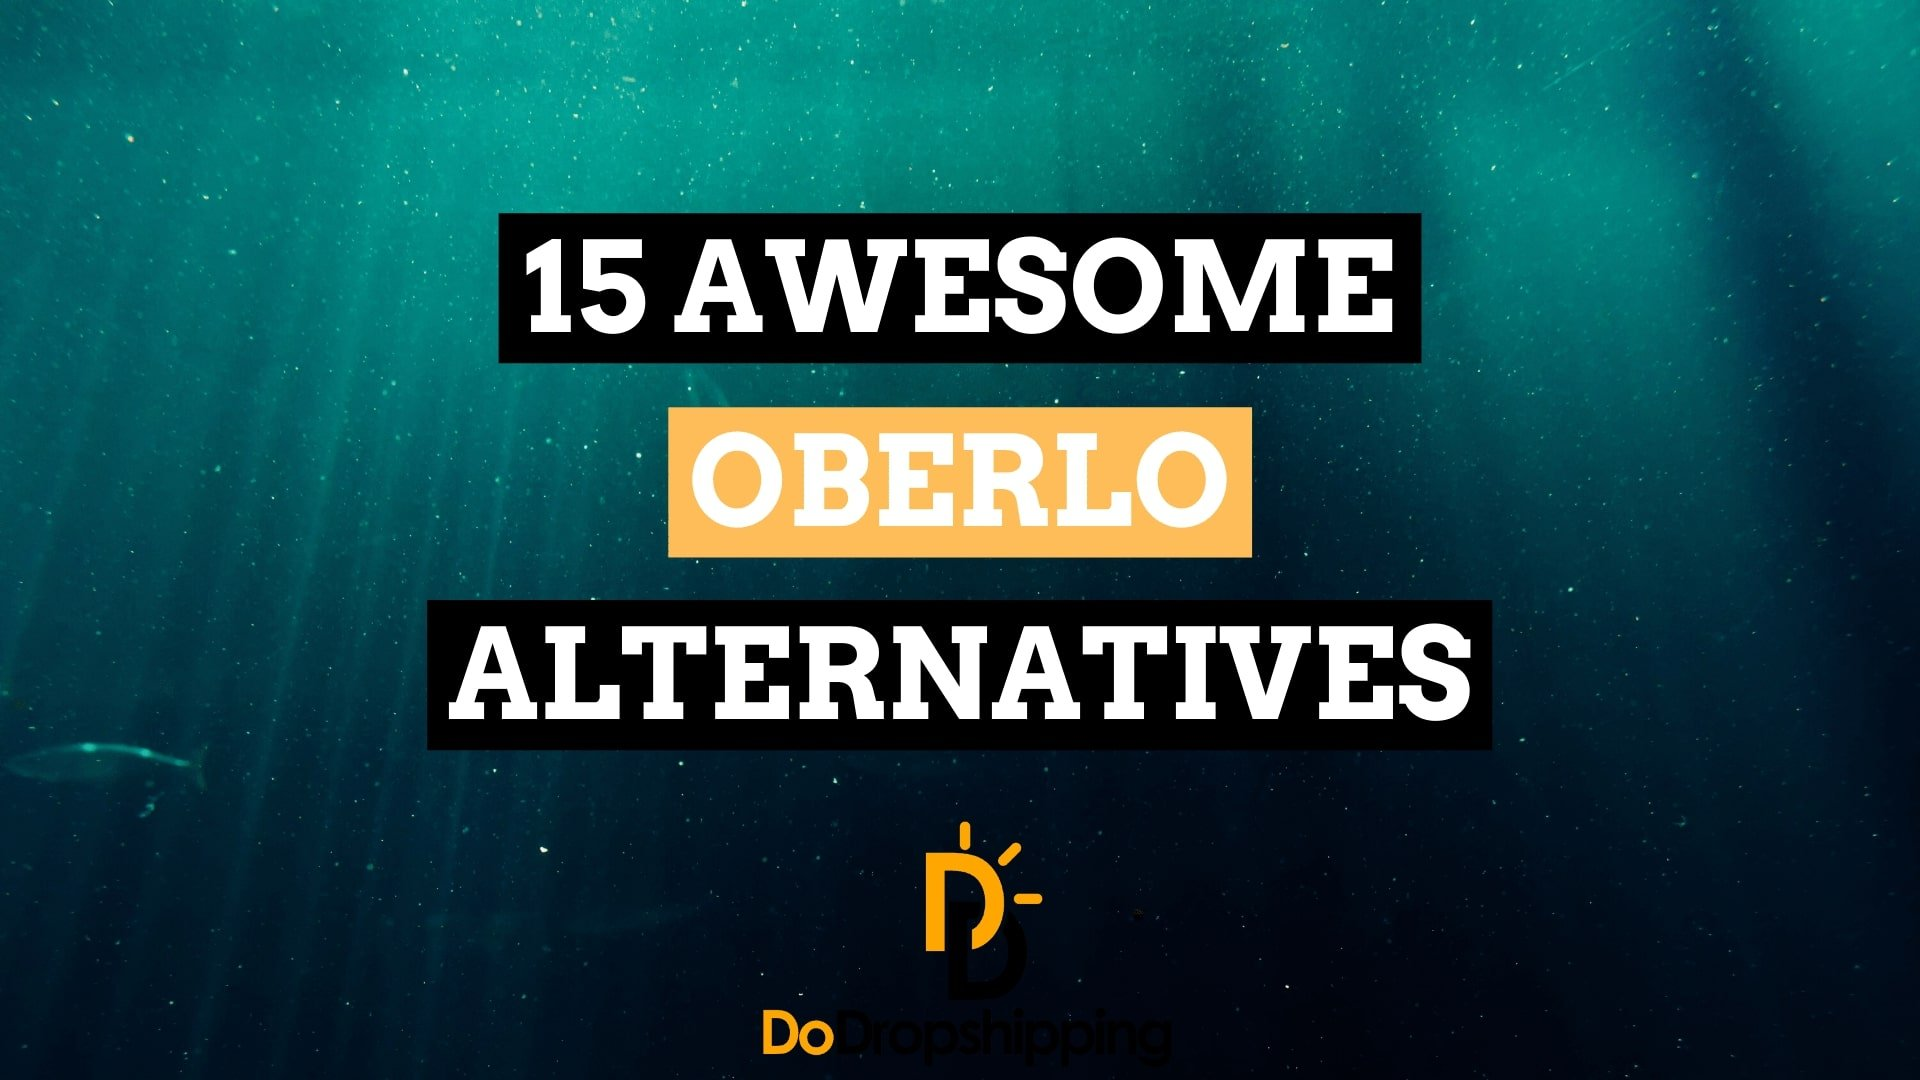 14 Awesome Oberlo Alternatives (Order Processing Apps)